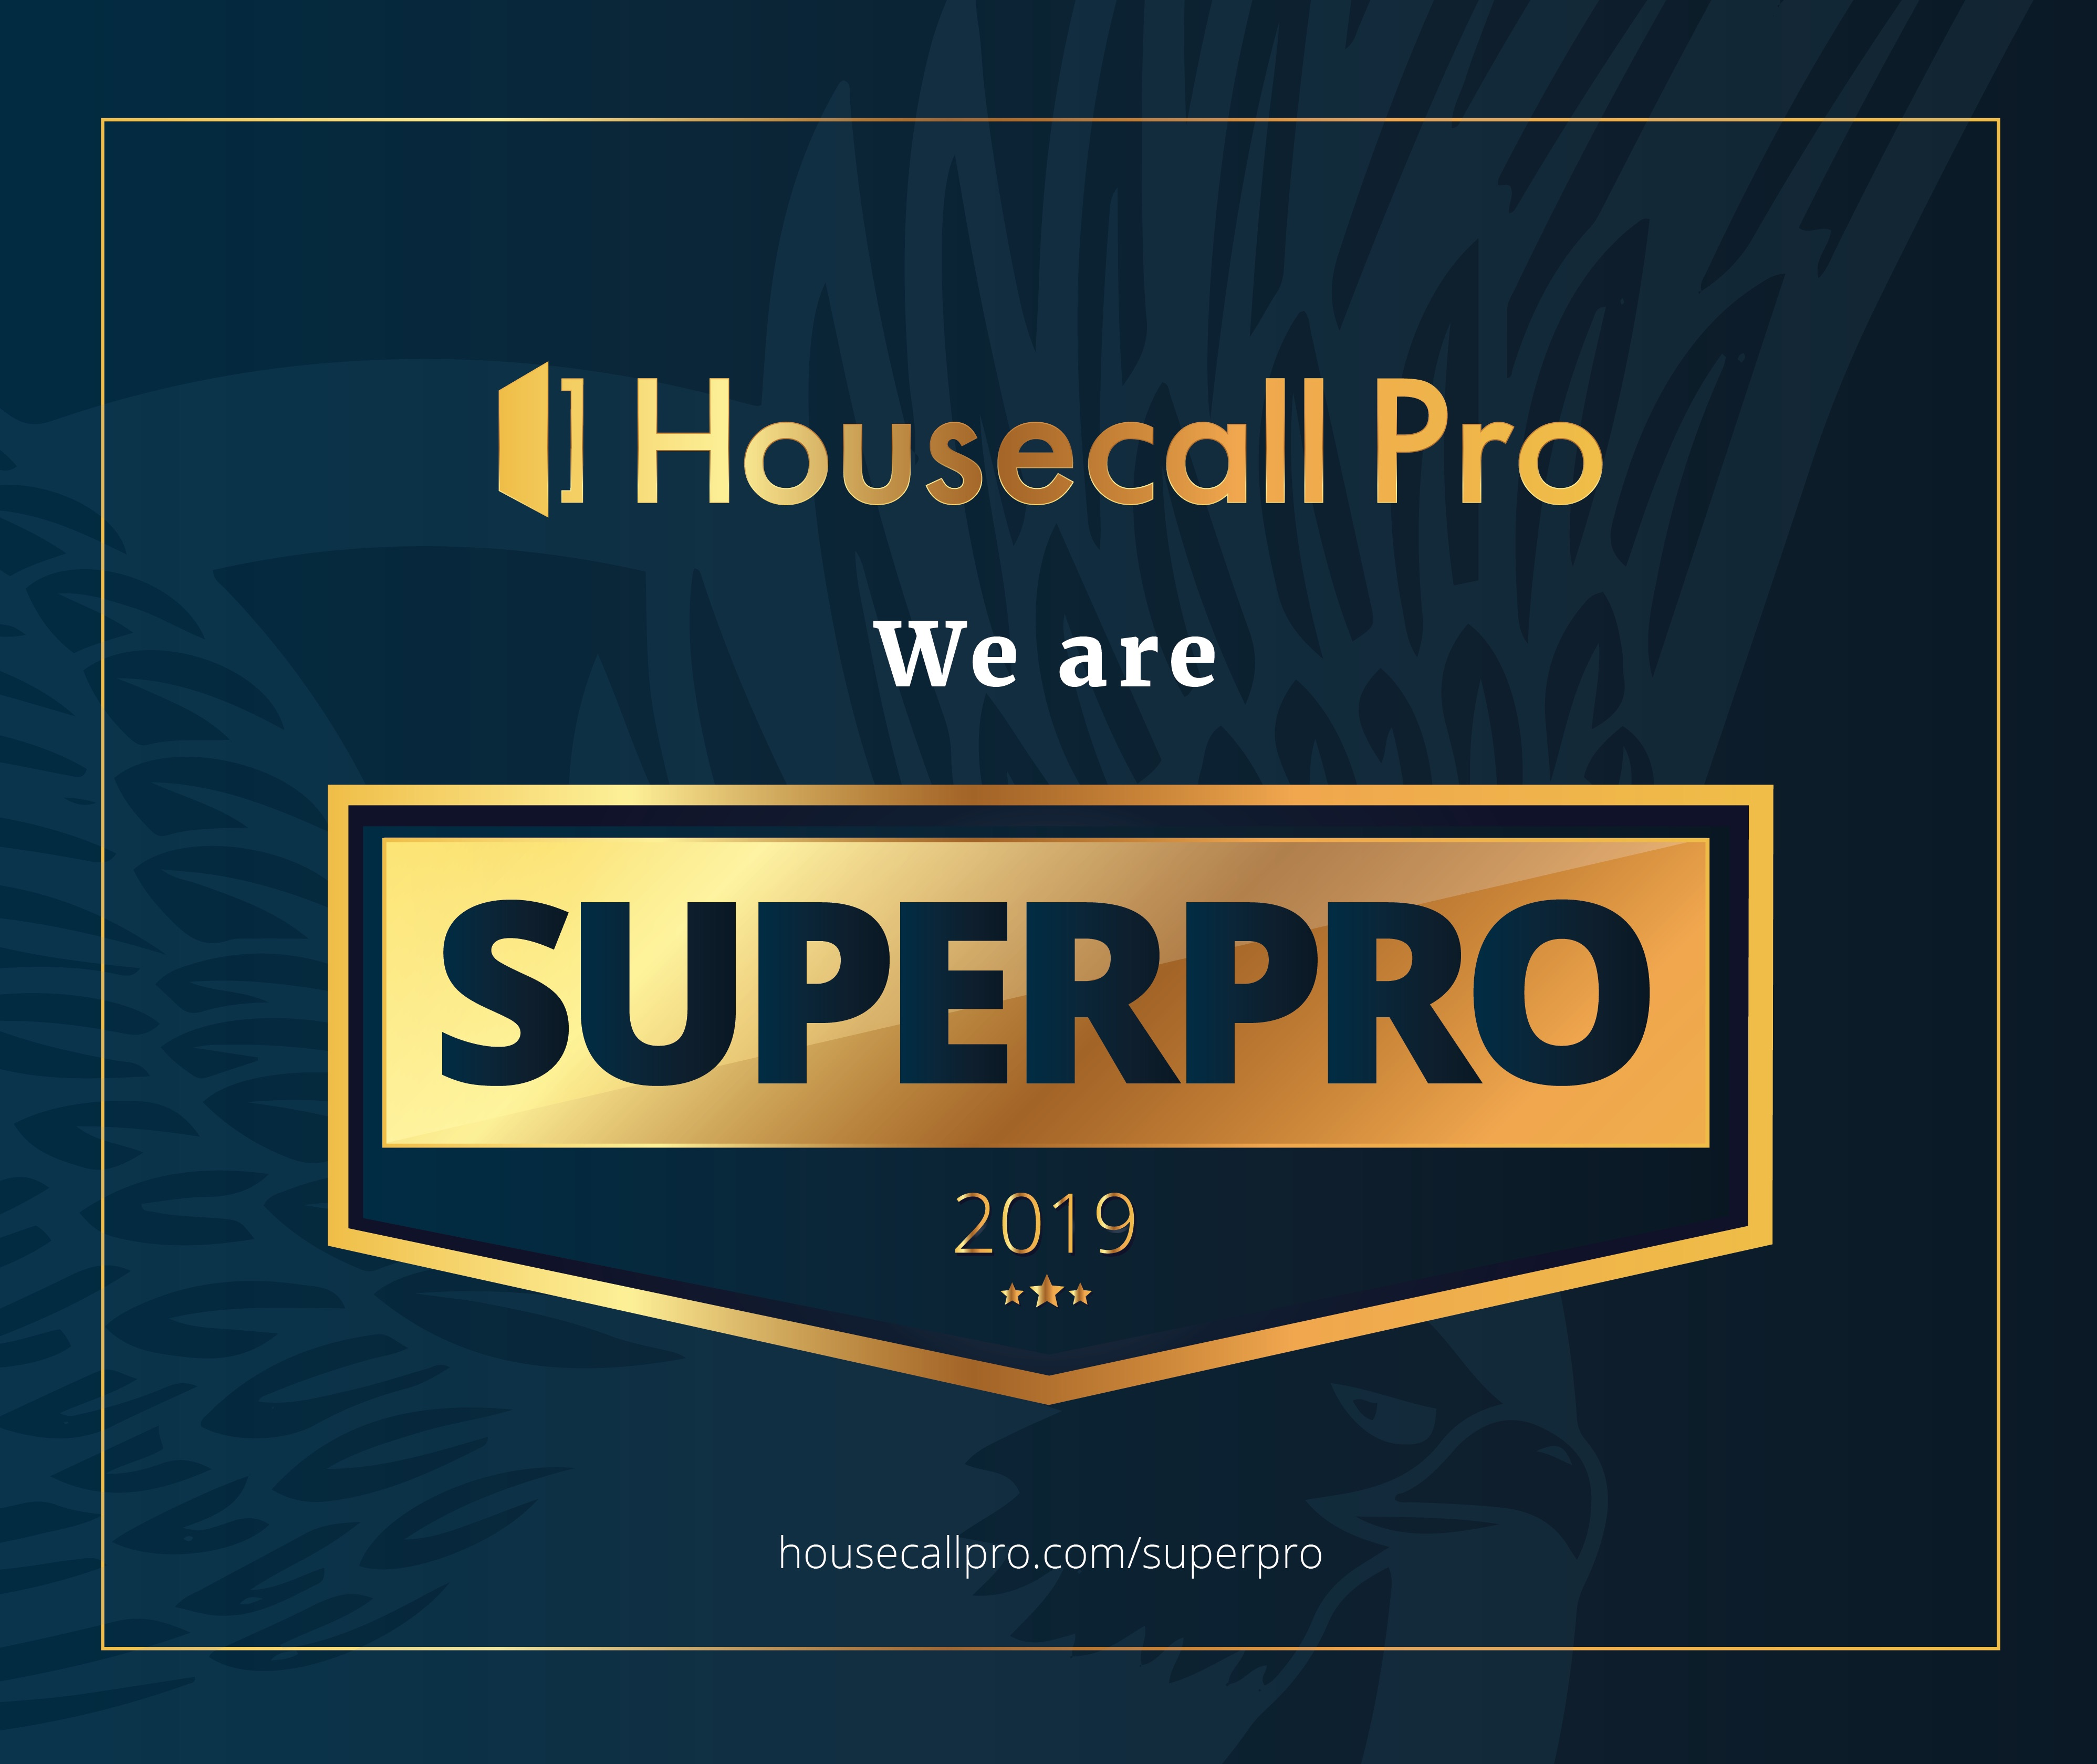 ark n spark electric have been awarded the Superpro award on Housecall Pro